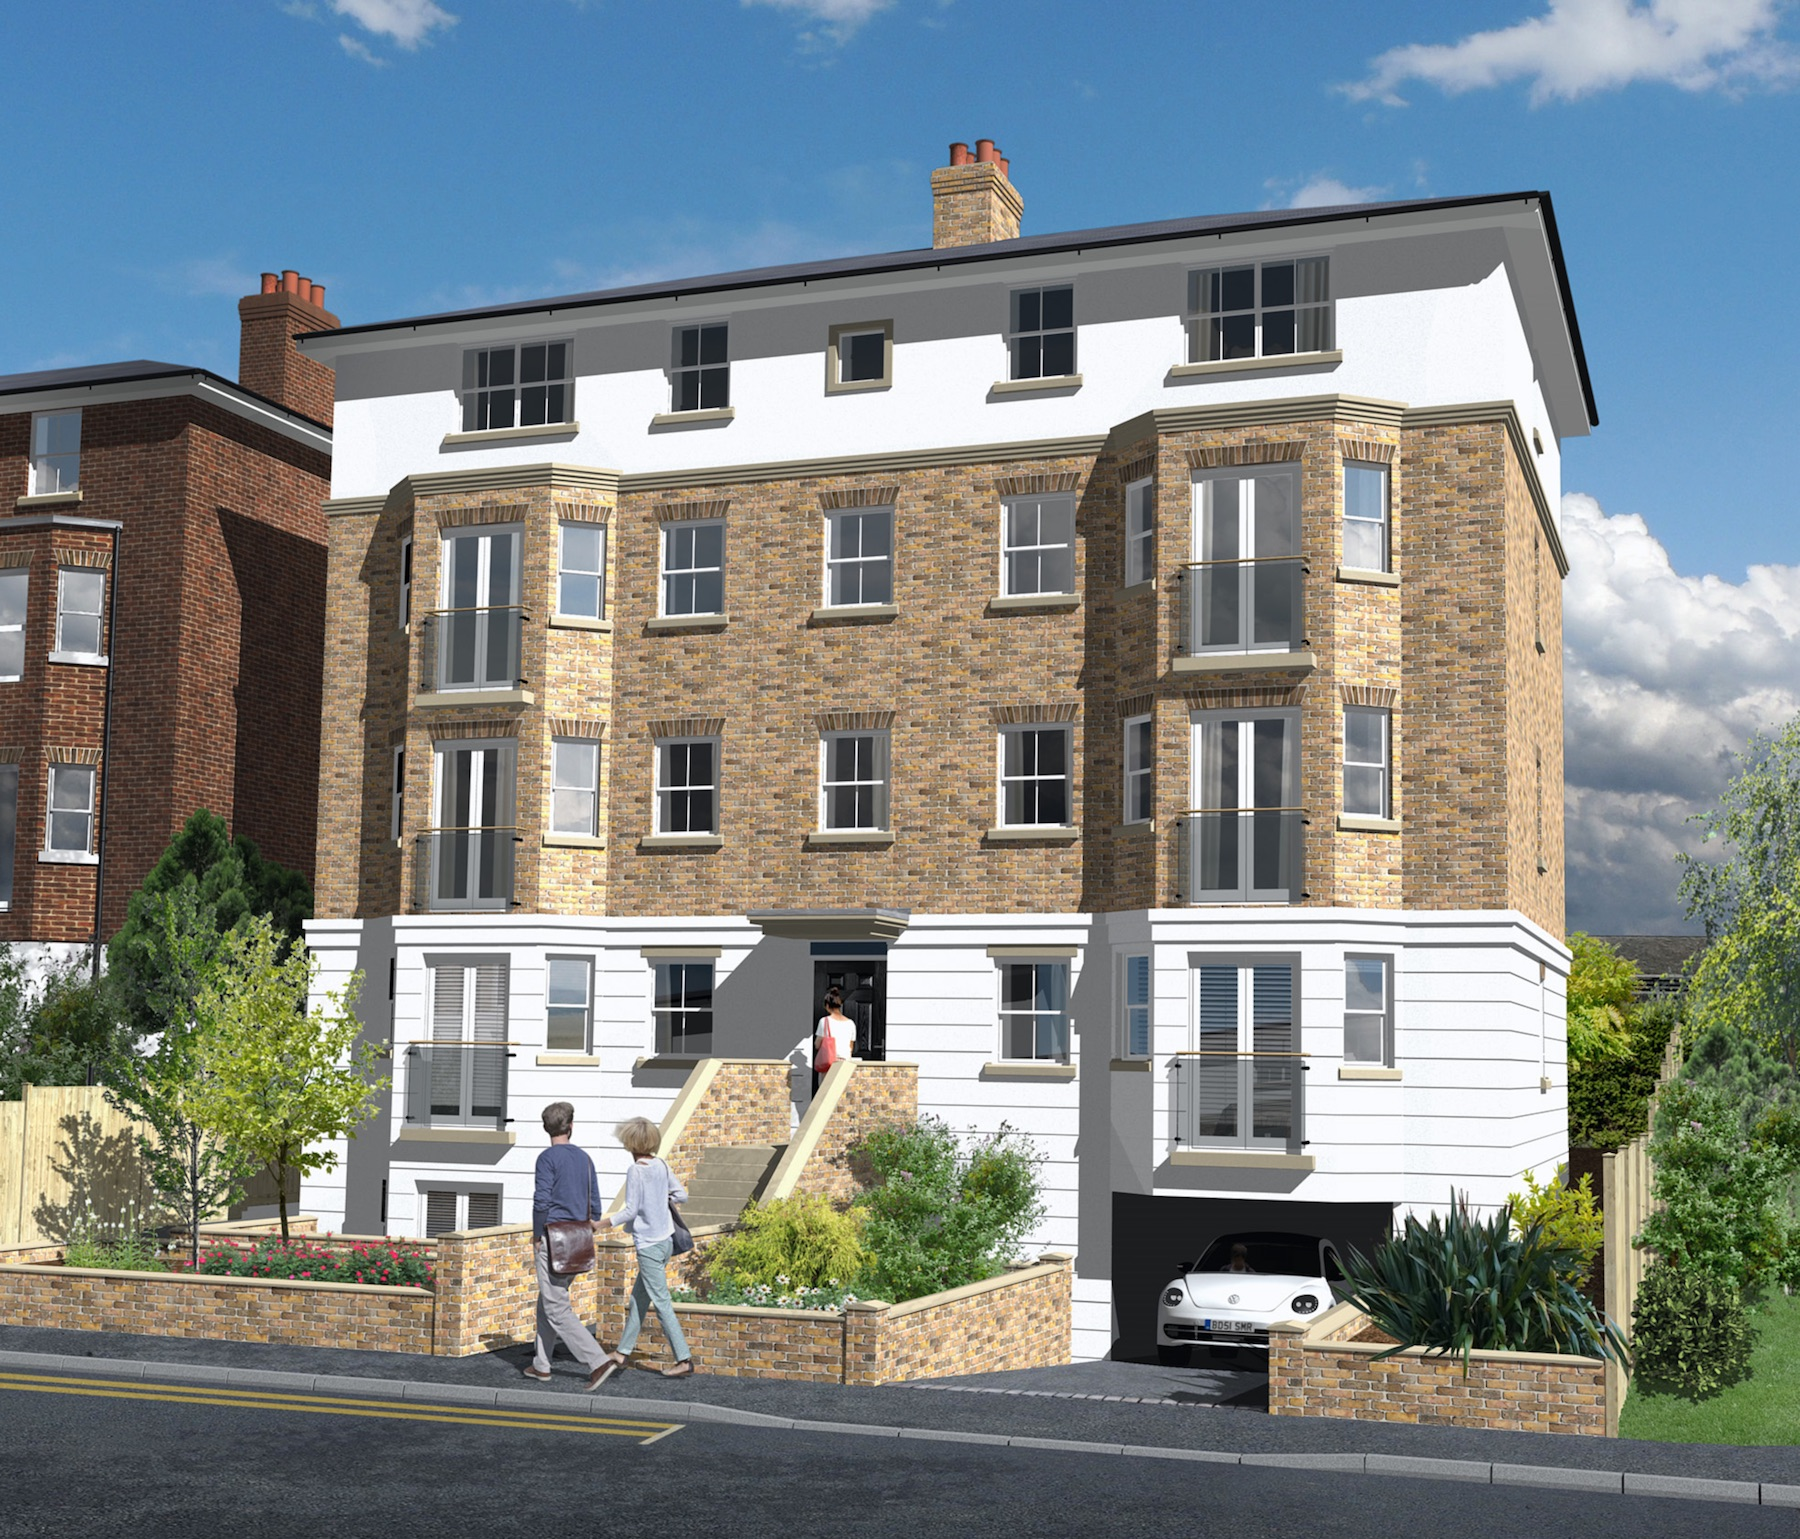 9 traditional 1/2 bedroom apartments,Swan Guest House, Leatherhead